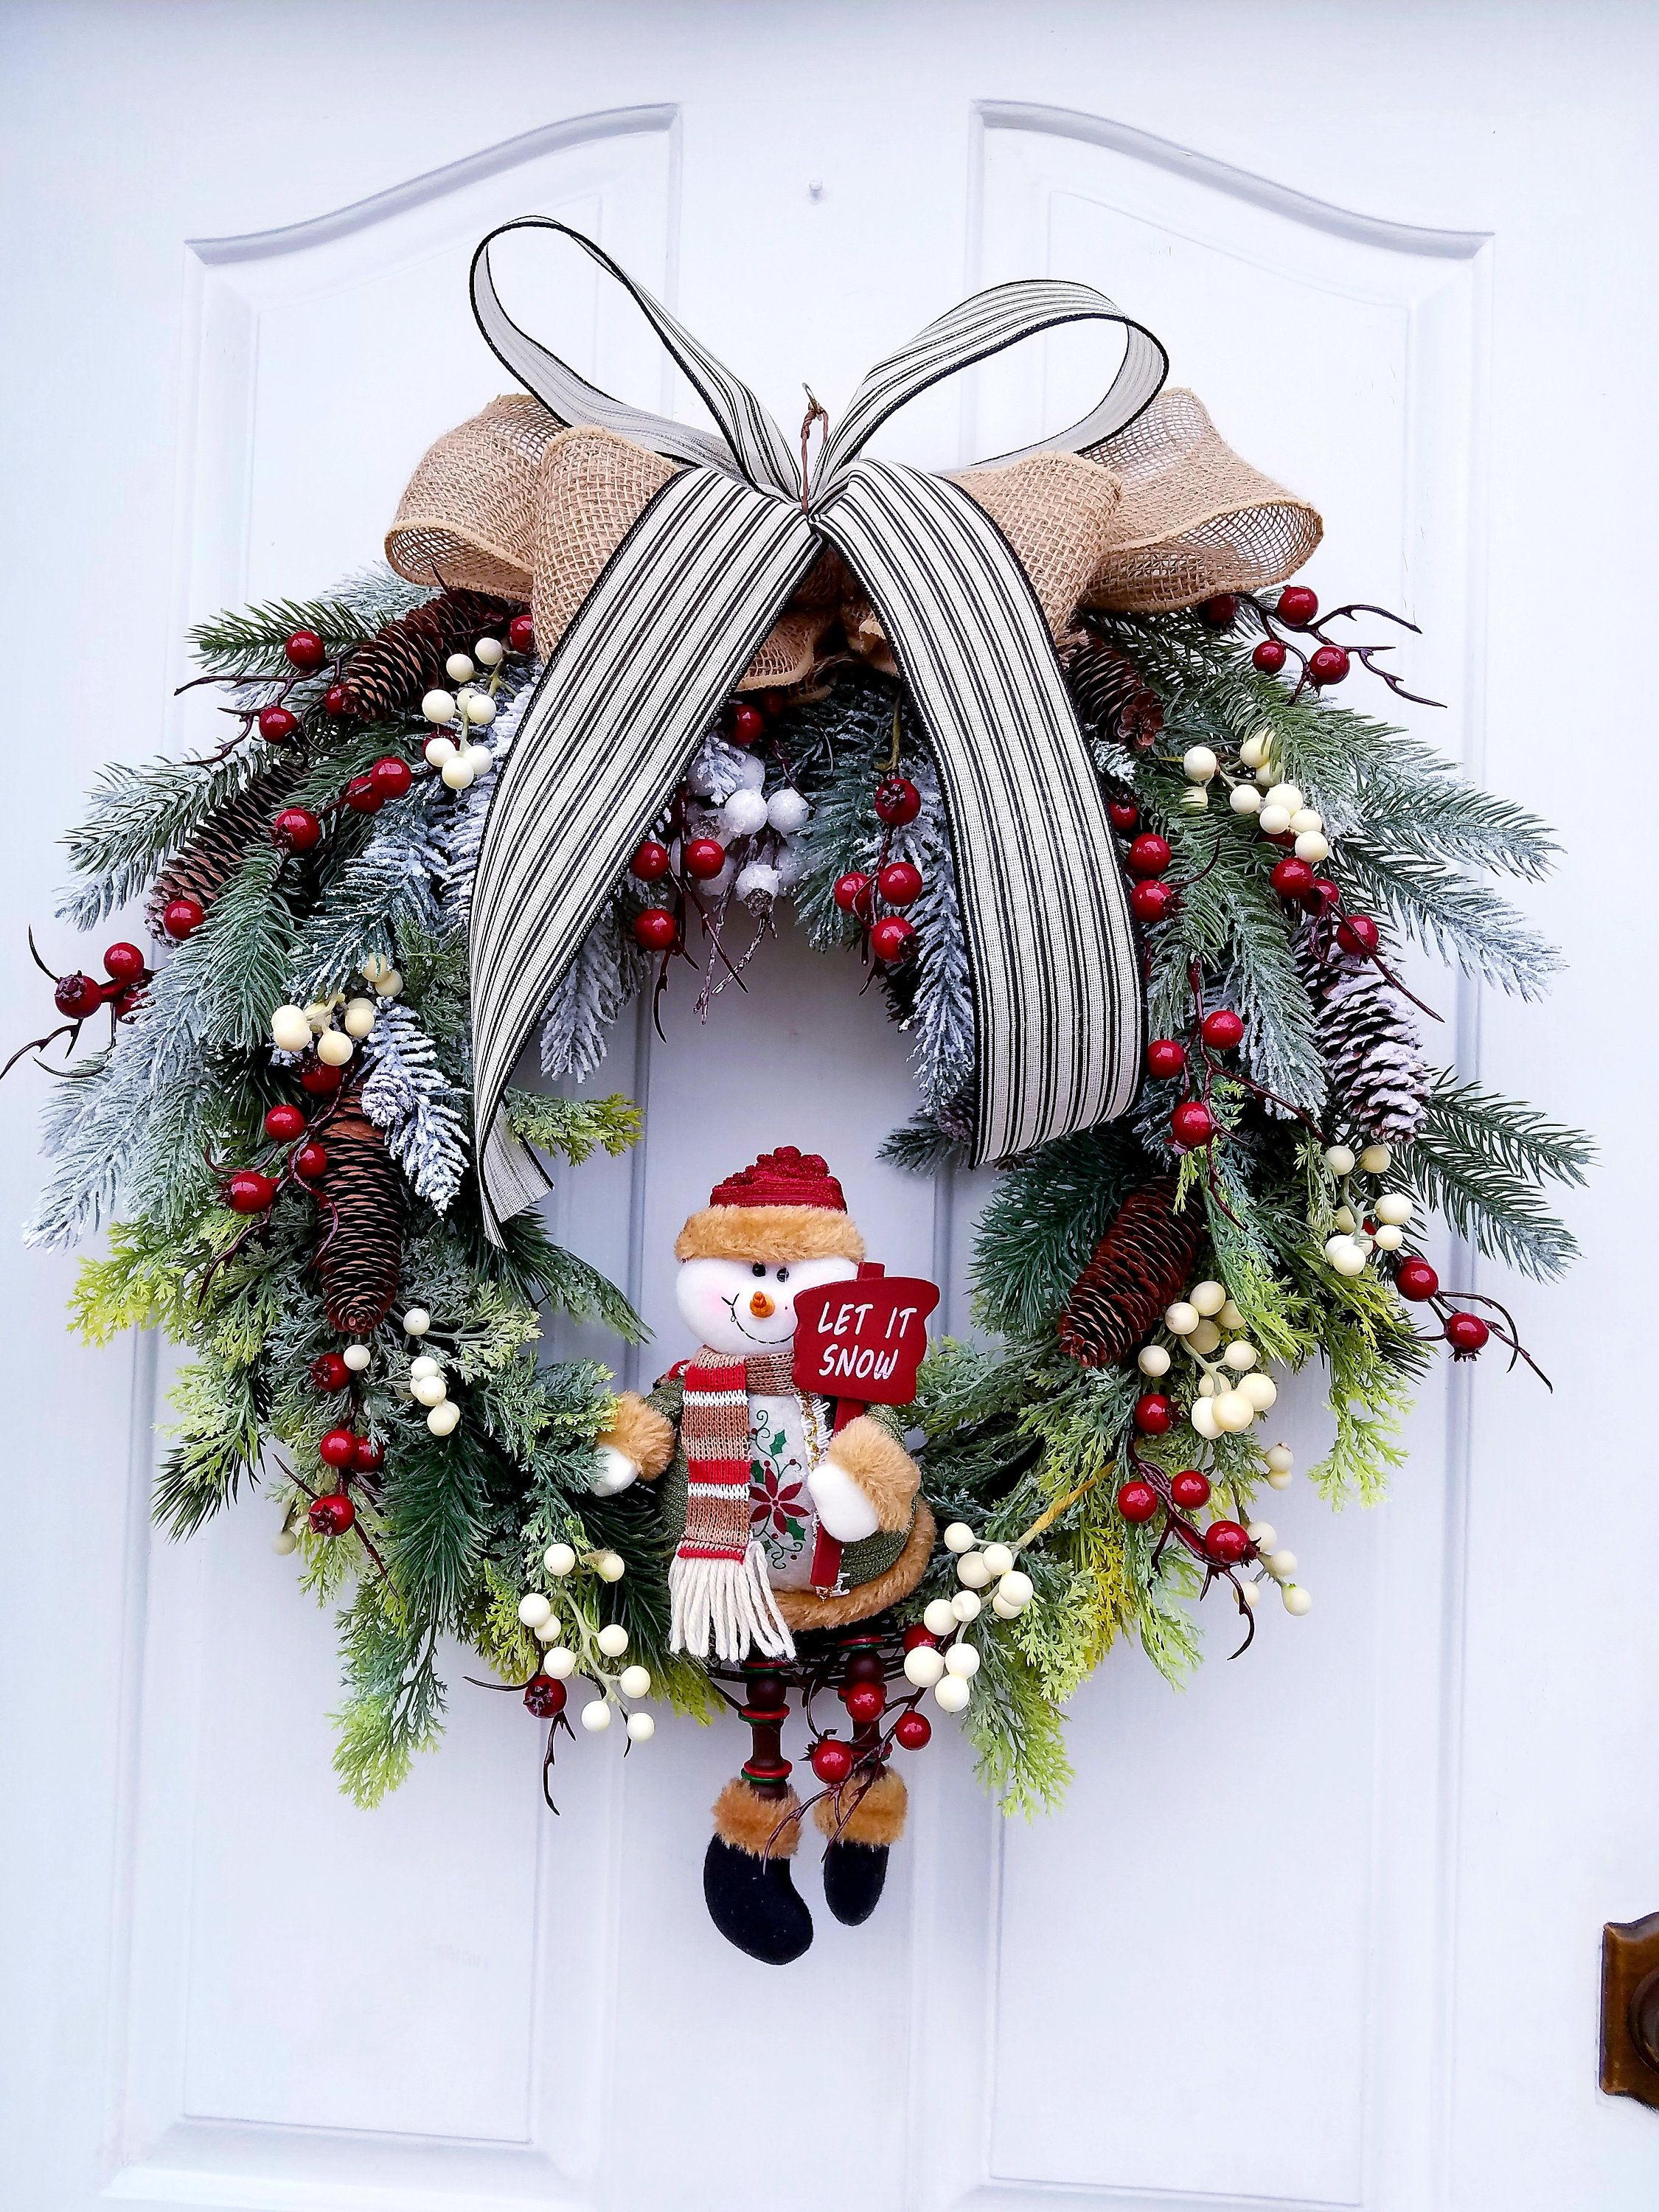 Snowman Wreath For Front Door Winter Door Decor Winter Door Decorations Winter Wreath Wreaths For Front Door